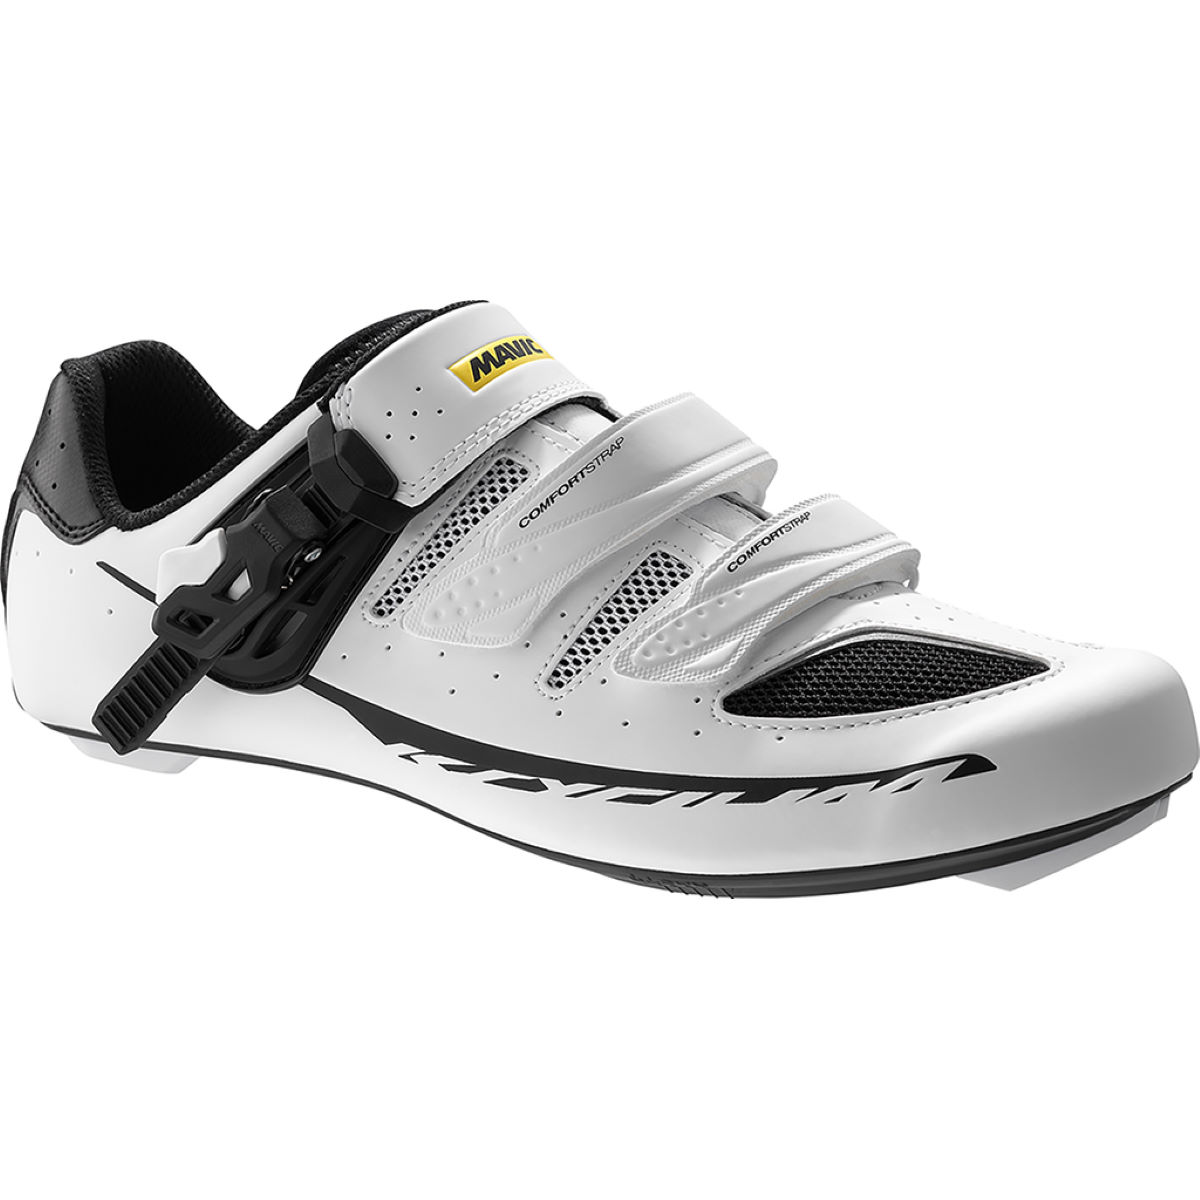 Chaussures Mavic Ksyrium Elite Maxi Fit II - 10 UK Blanc Chaussures de route